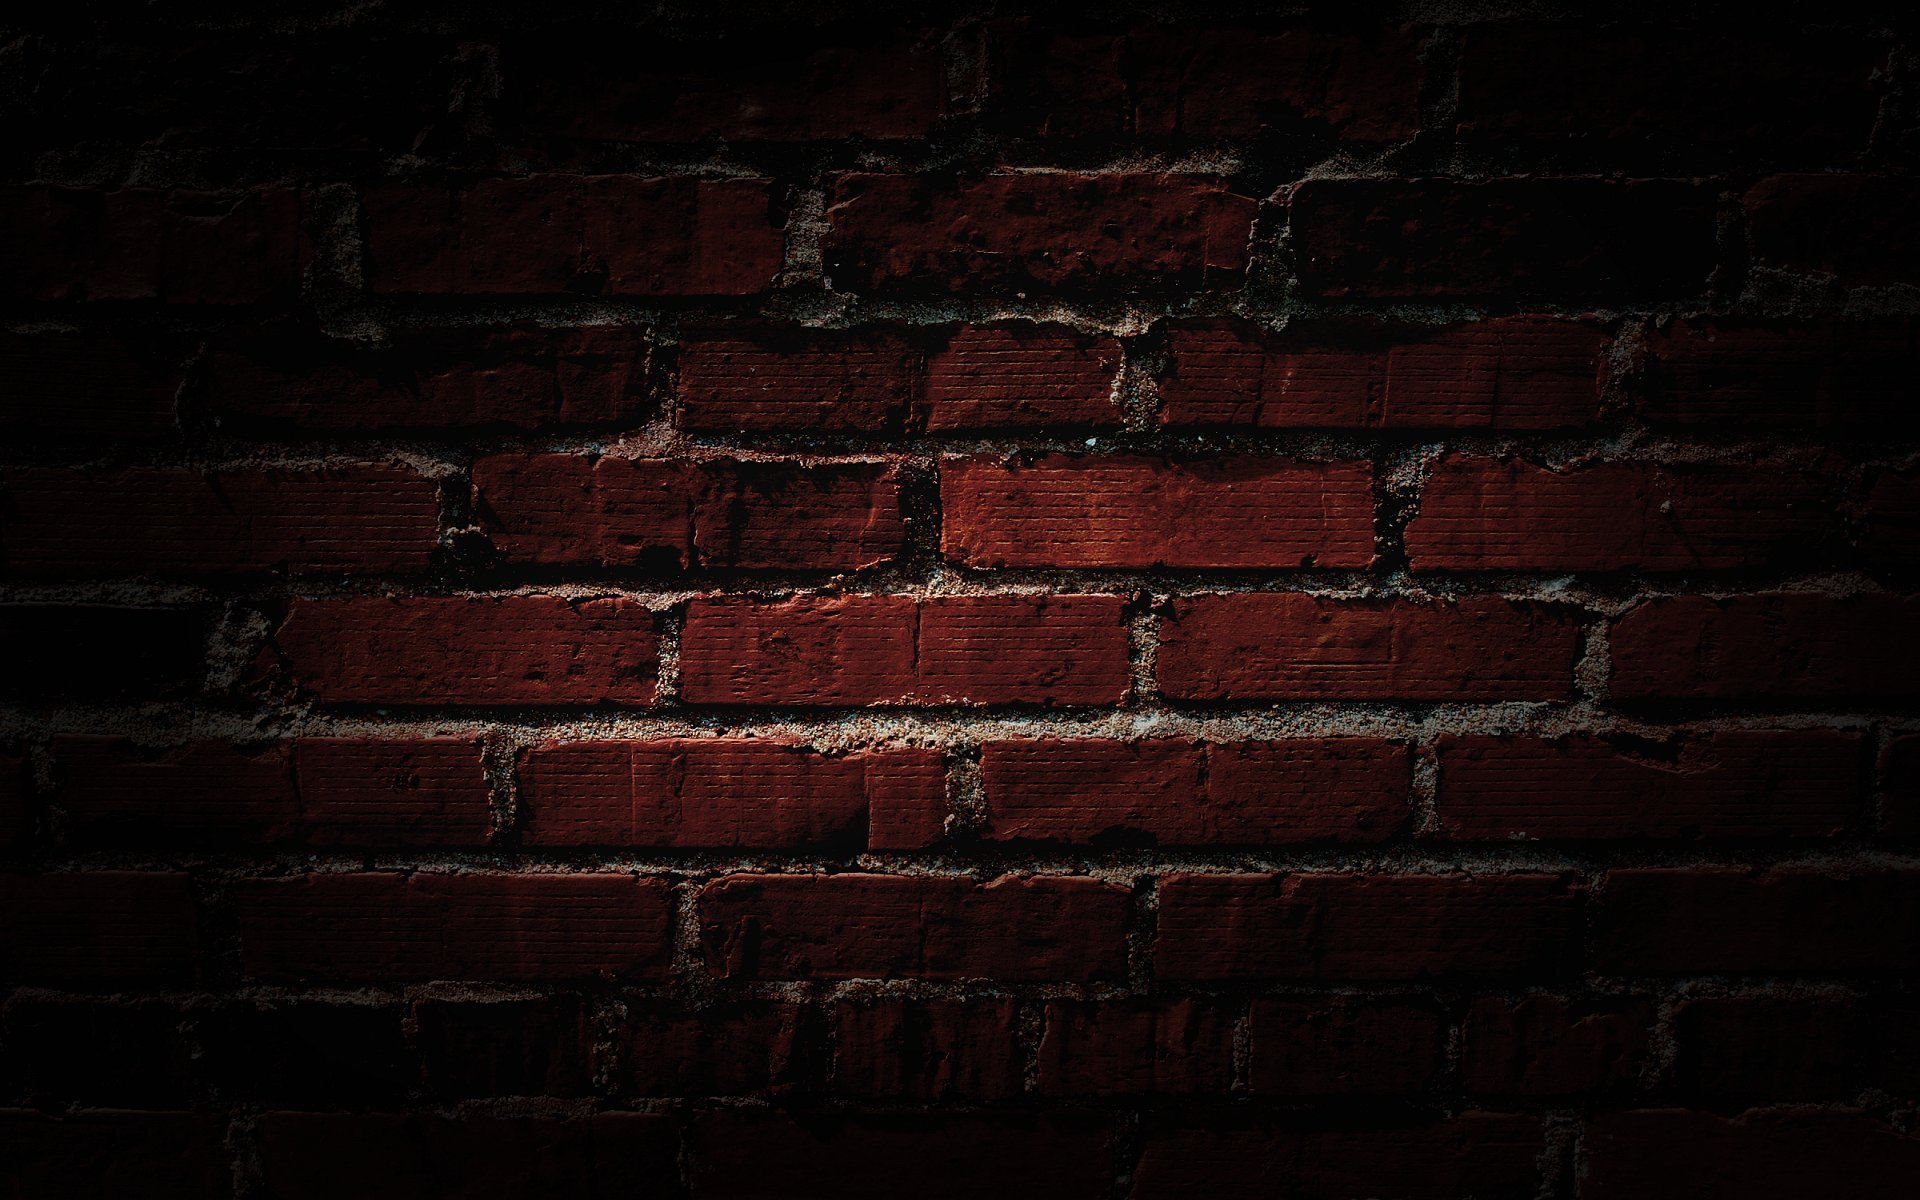 Brick wall wallpapers hd desktop wallpapers 4k hd for Wallpapering a wall